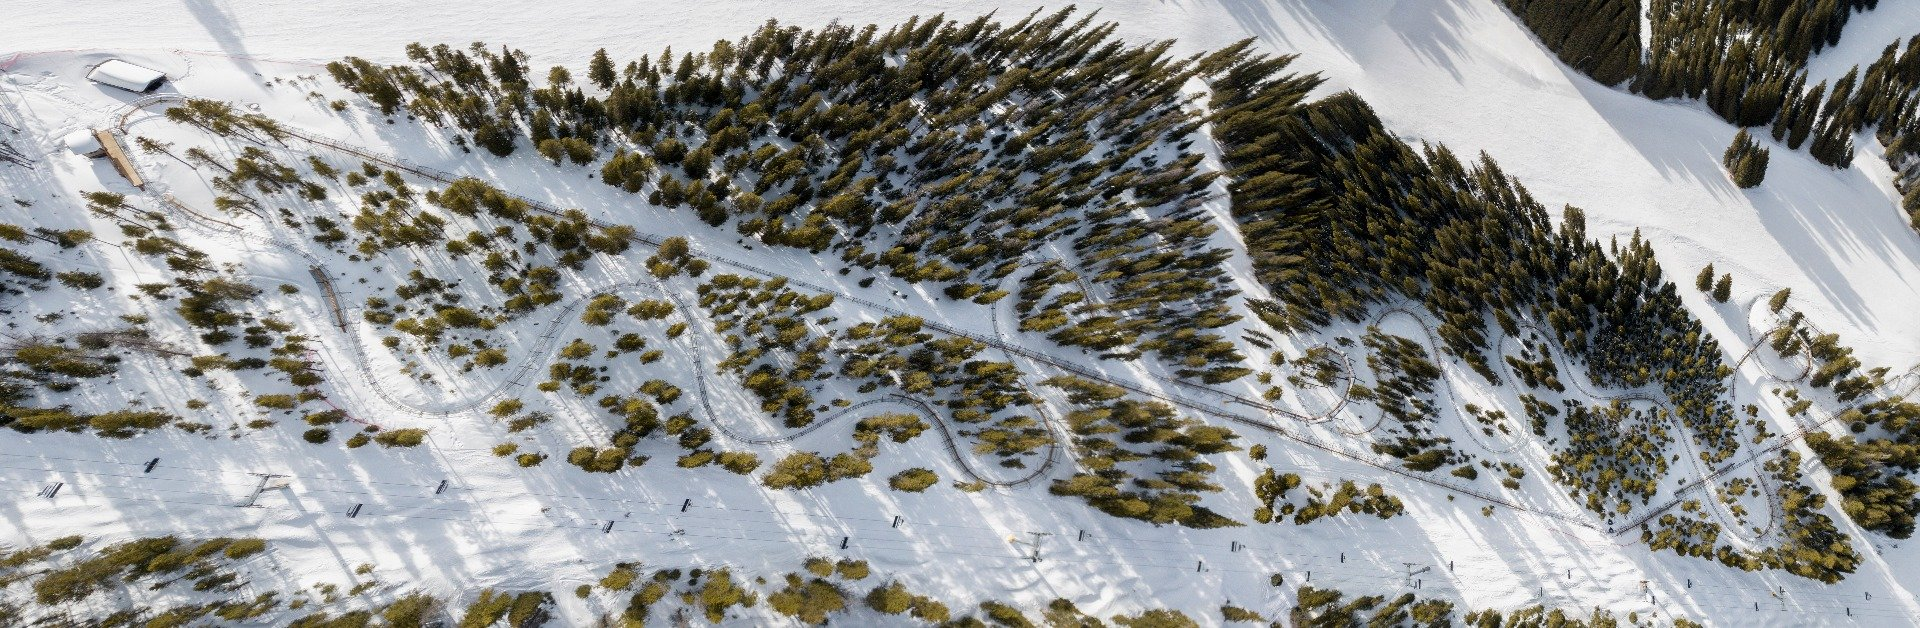 A view of Copper Mountain's Rocky Mountain Coaster from above - © Tripp Fay, Copper Mountain Resort